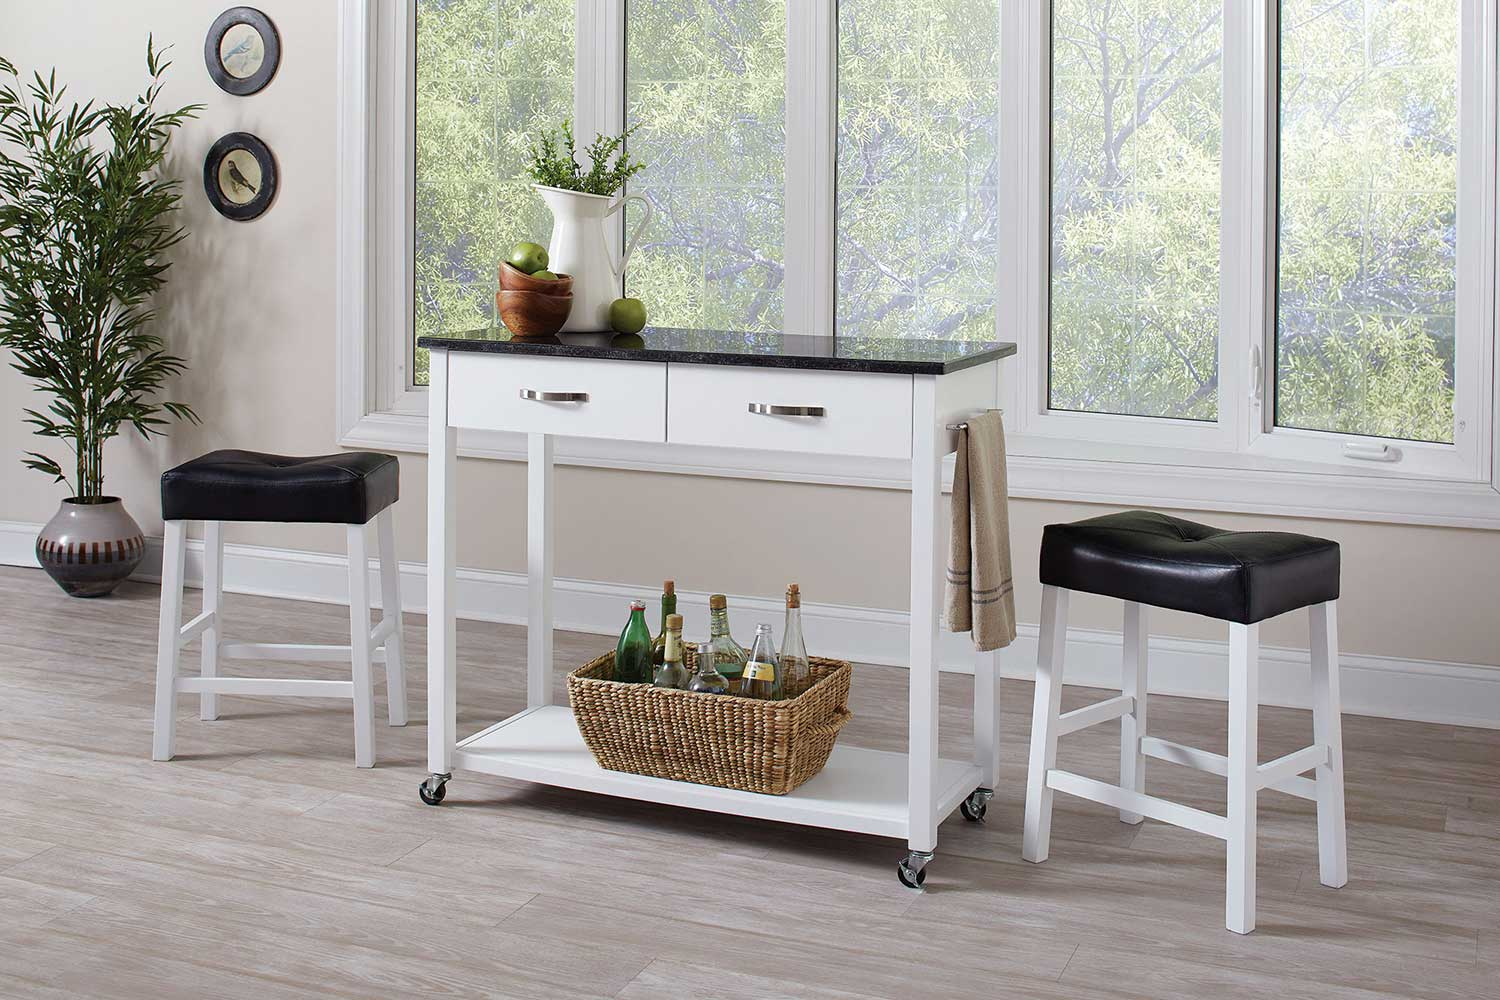 Coaster 102134 3 PC Counter Height Dining Set - White